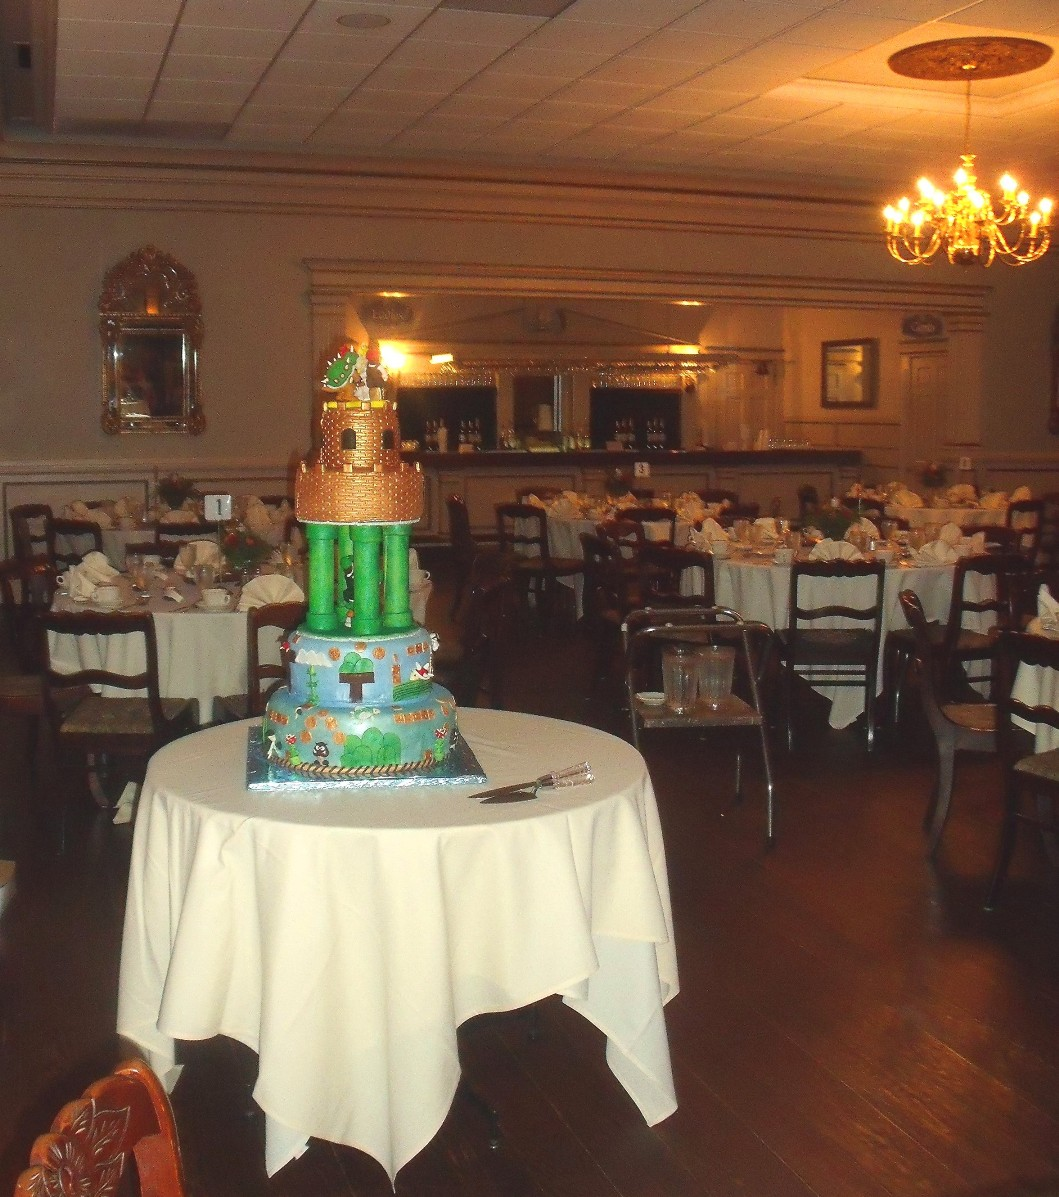 Mario video game theme wedding cake in reception room for Video for weddings